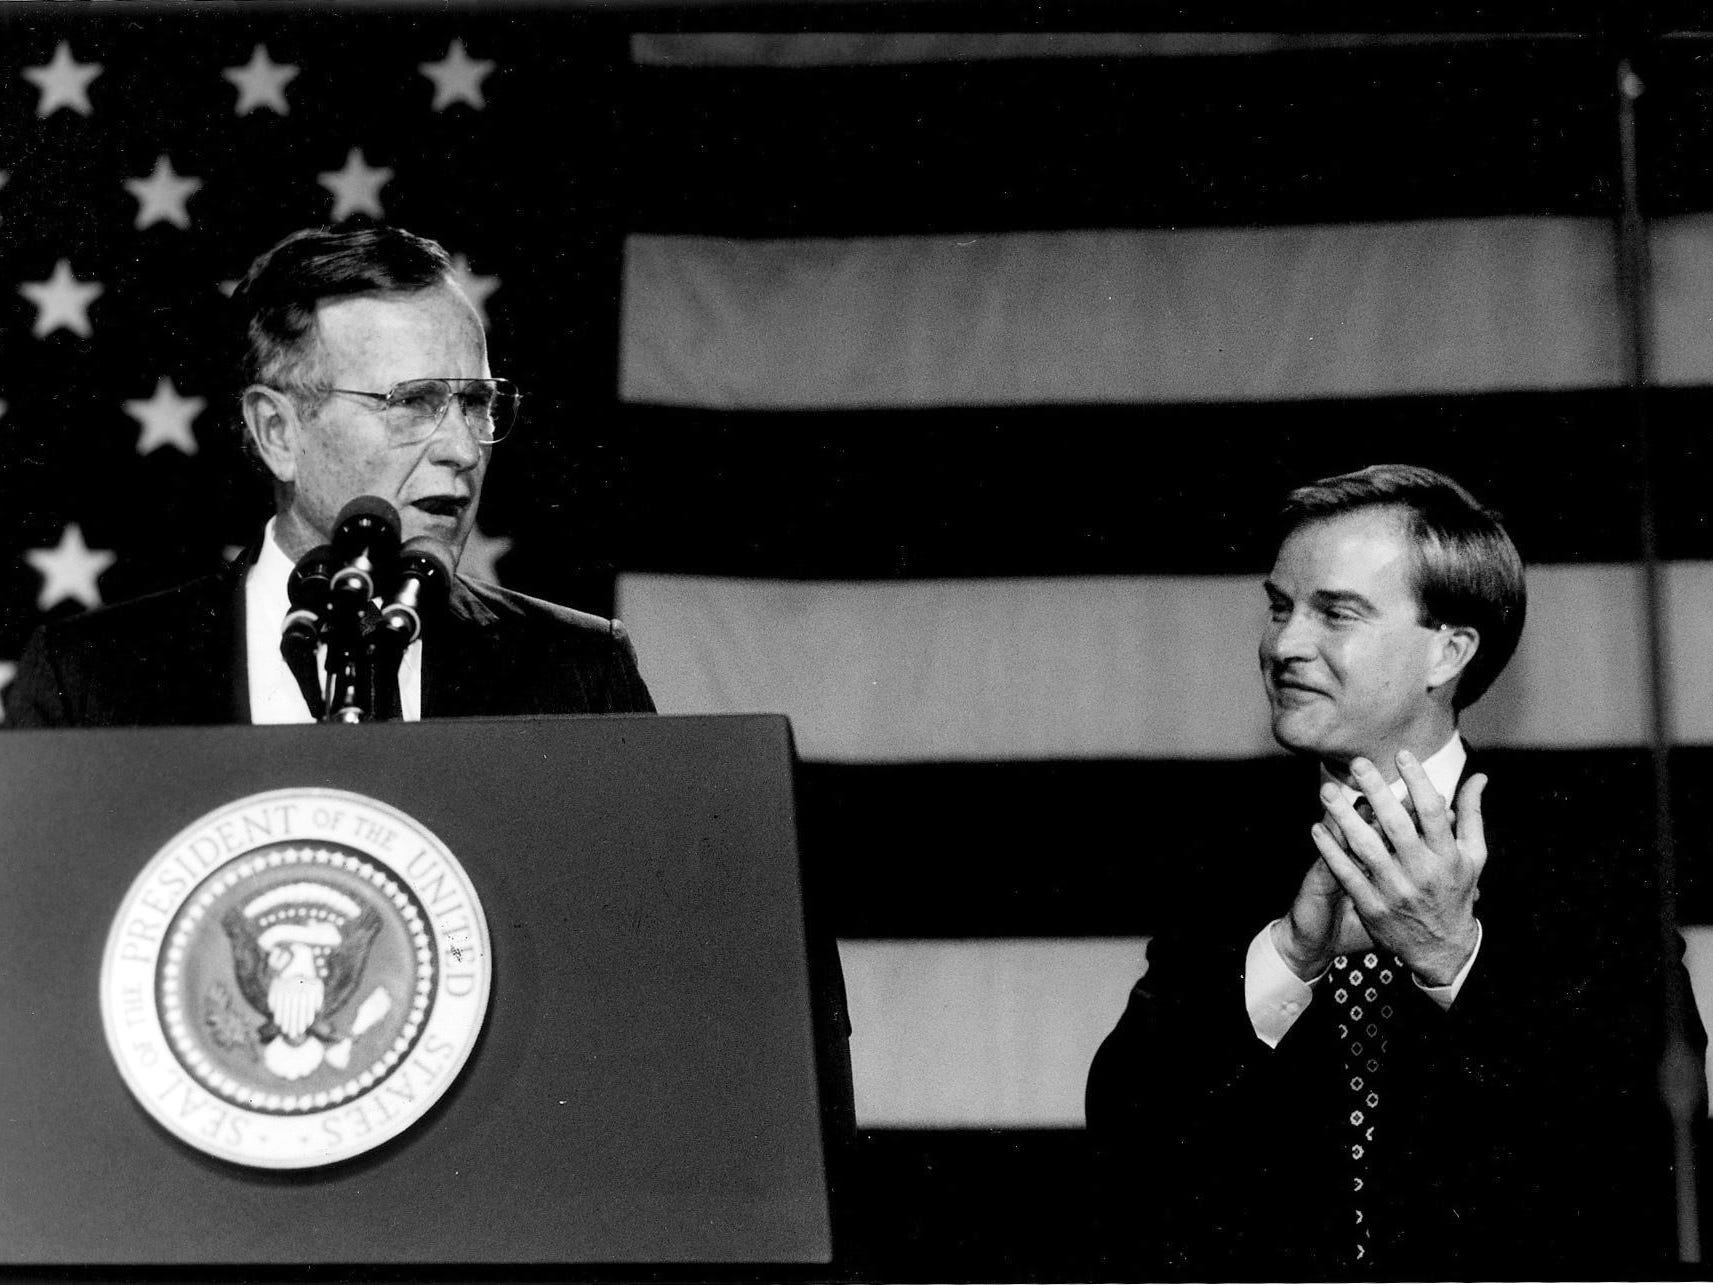 Bill Schuette, candidate for U.S. Senate, right, claps after introducing President George Bush during a Michigan visit in Septmber1990.